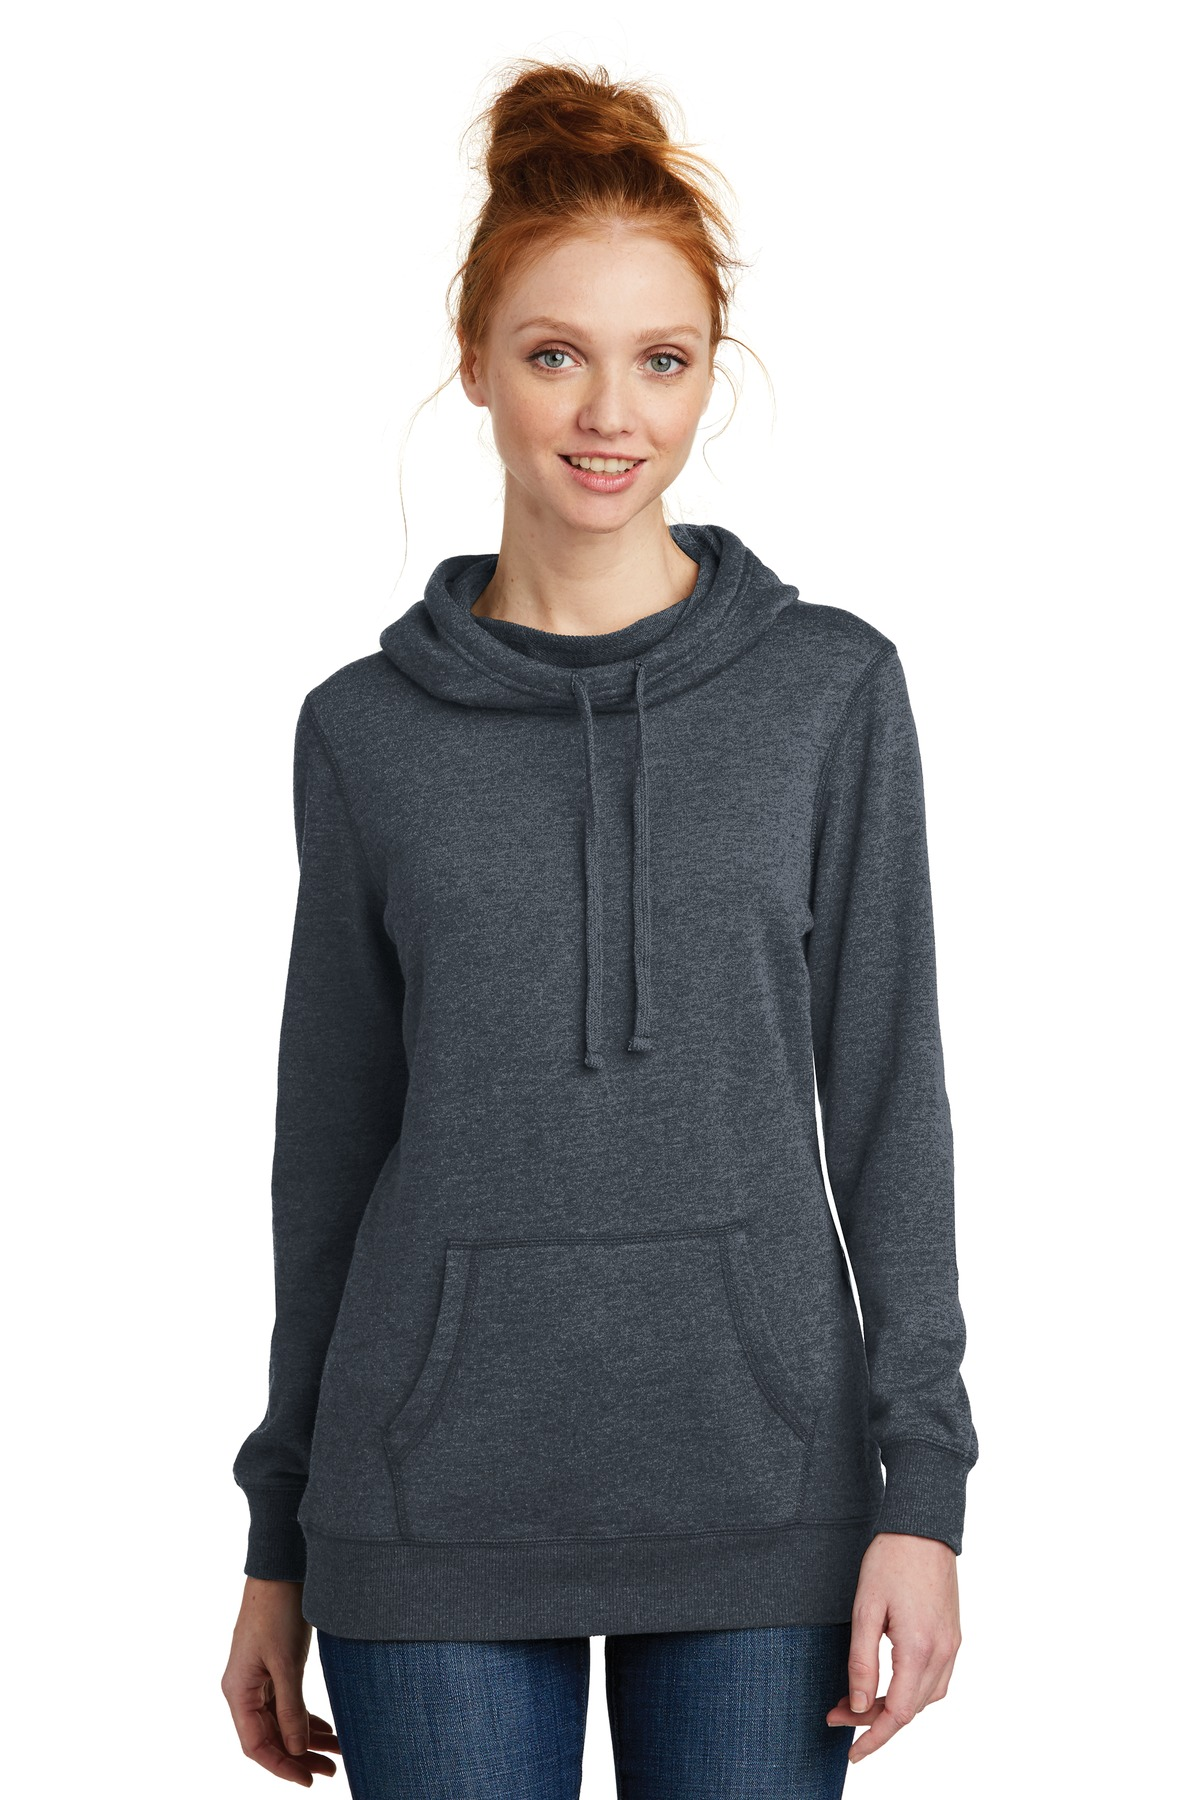 District  ®  Women's Lightweight Fleece Hoodie. DM493 - Heathered Navy